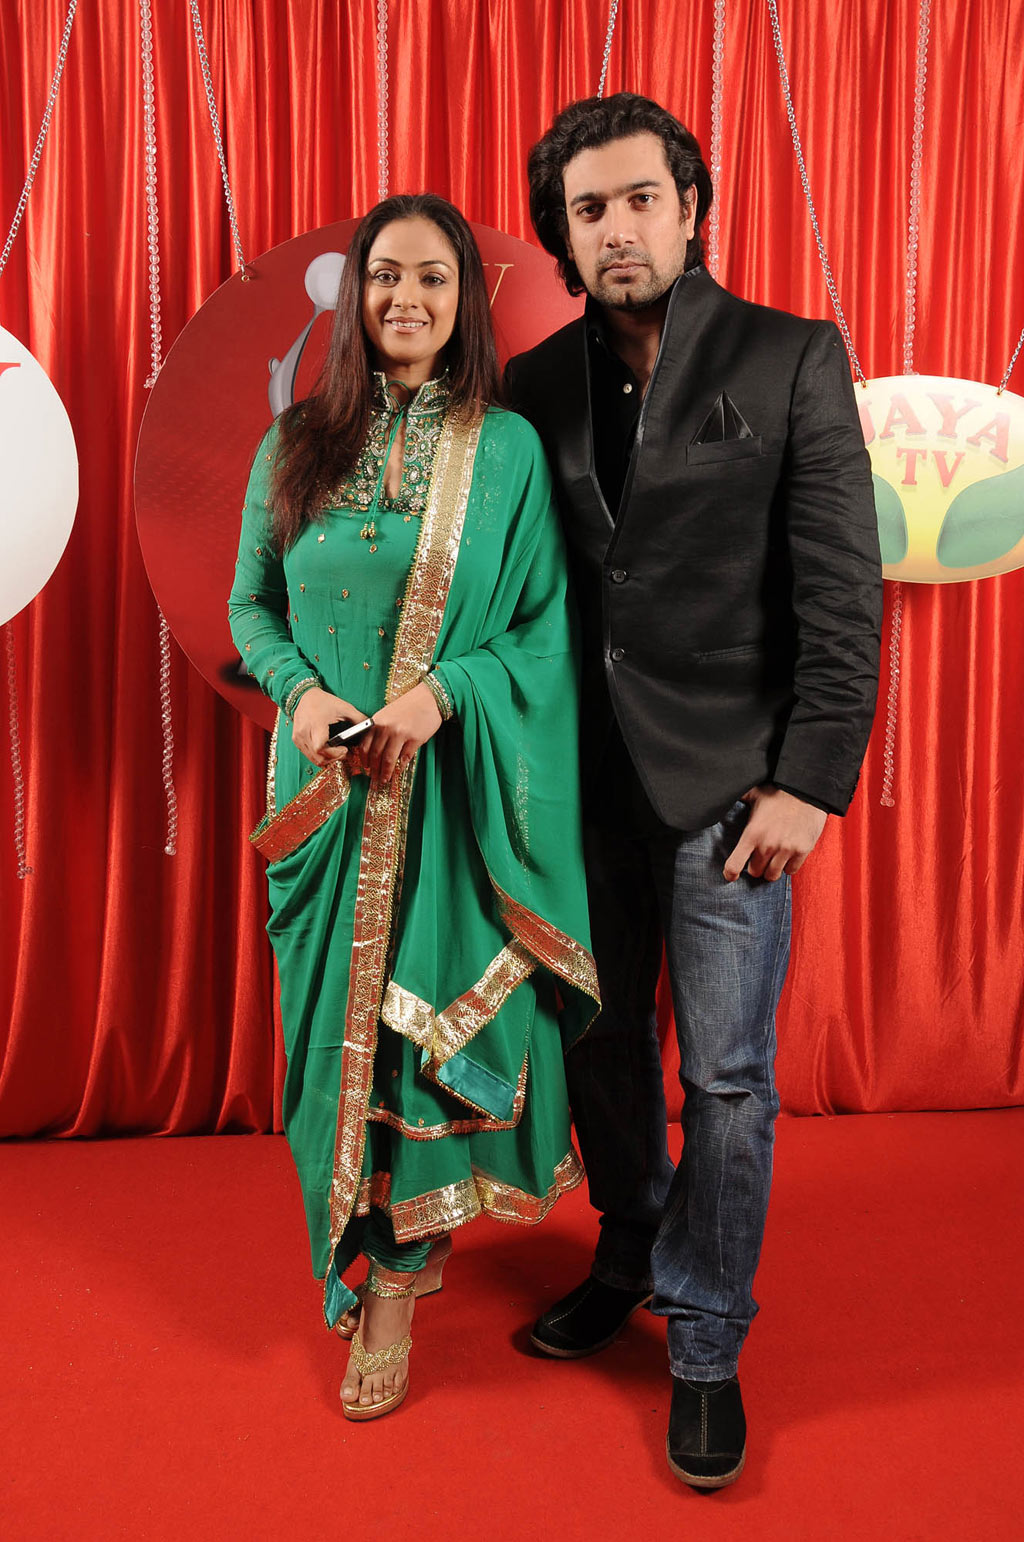 Simran and her husband